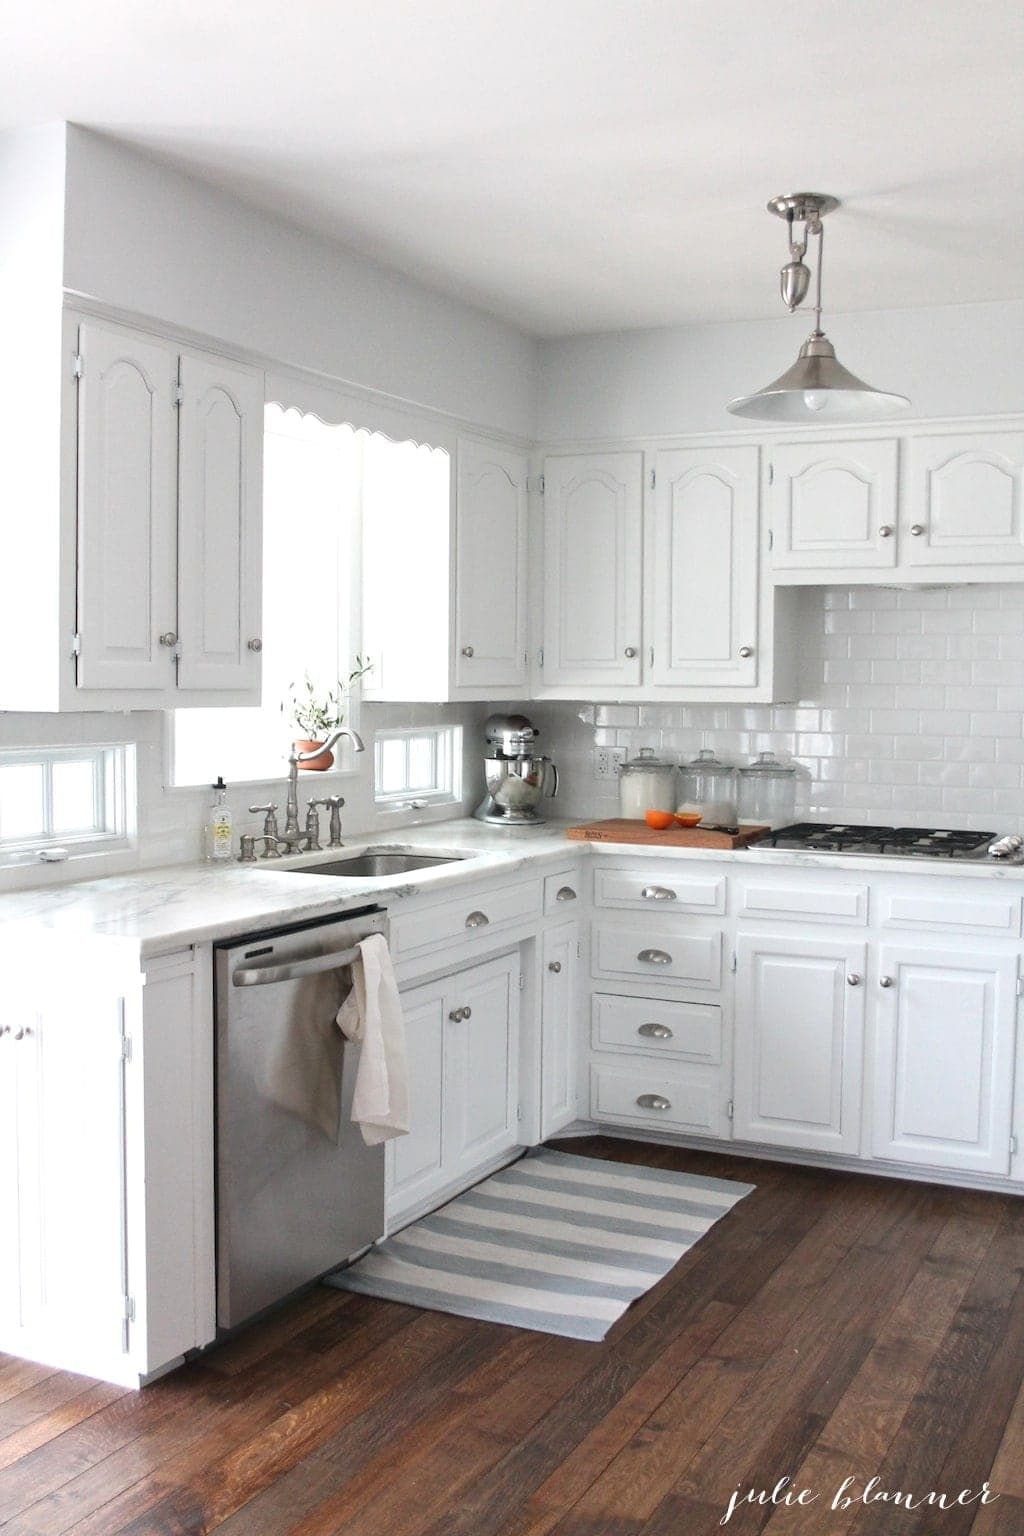 White Marble Counter : The risks benefits of marble countertops